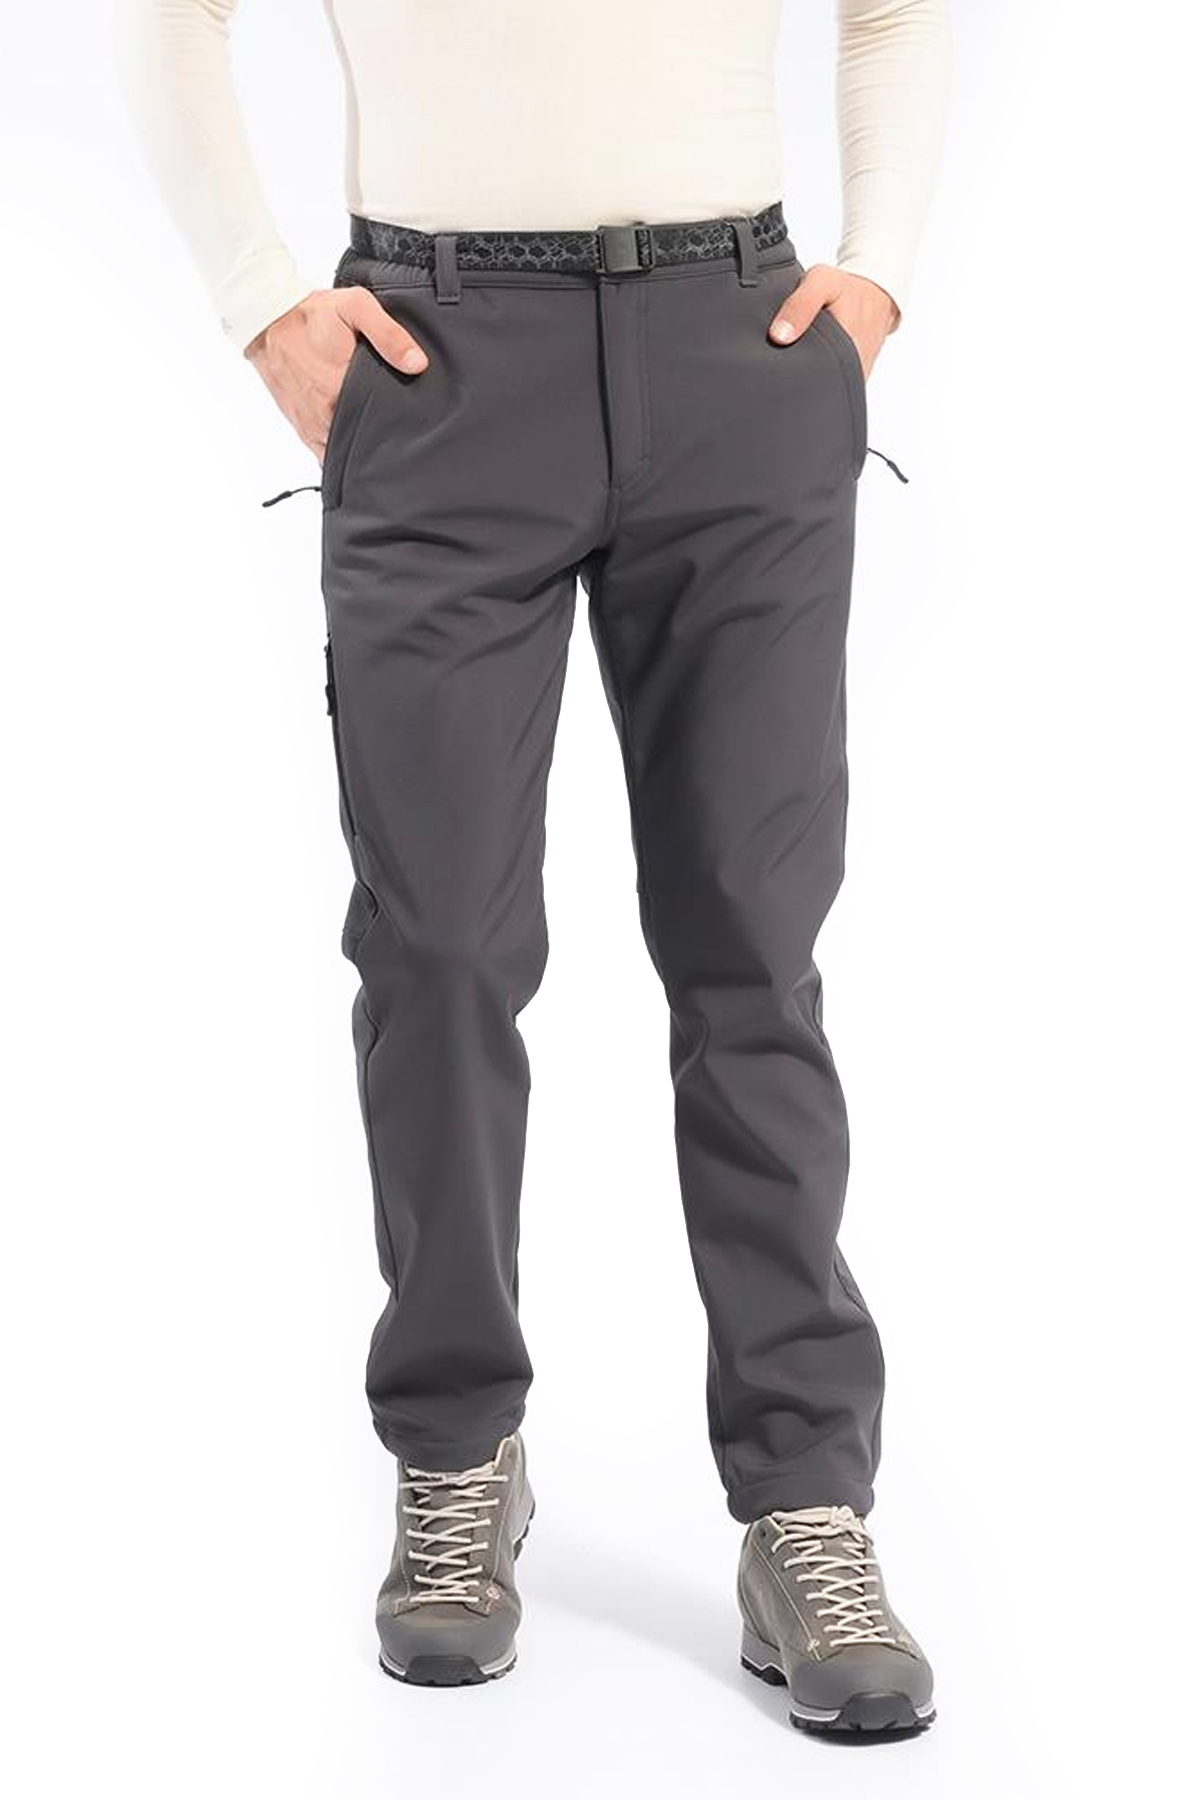 FREECAMP Soft Shell Trekking Pantolon Gri 105138-GR